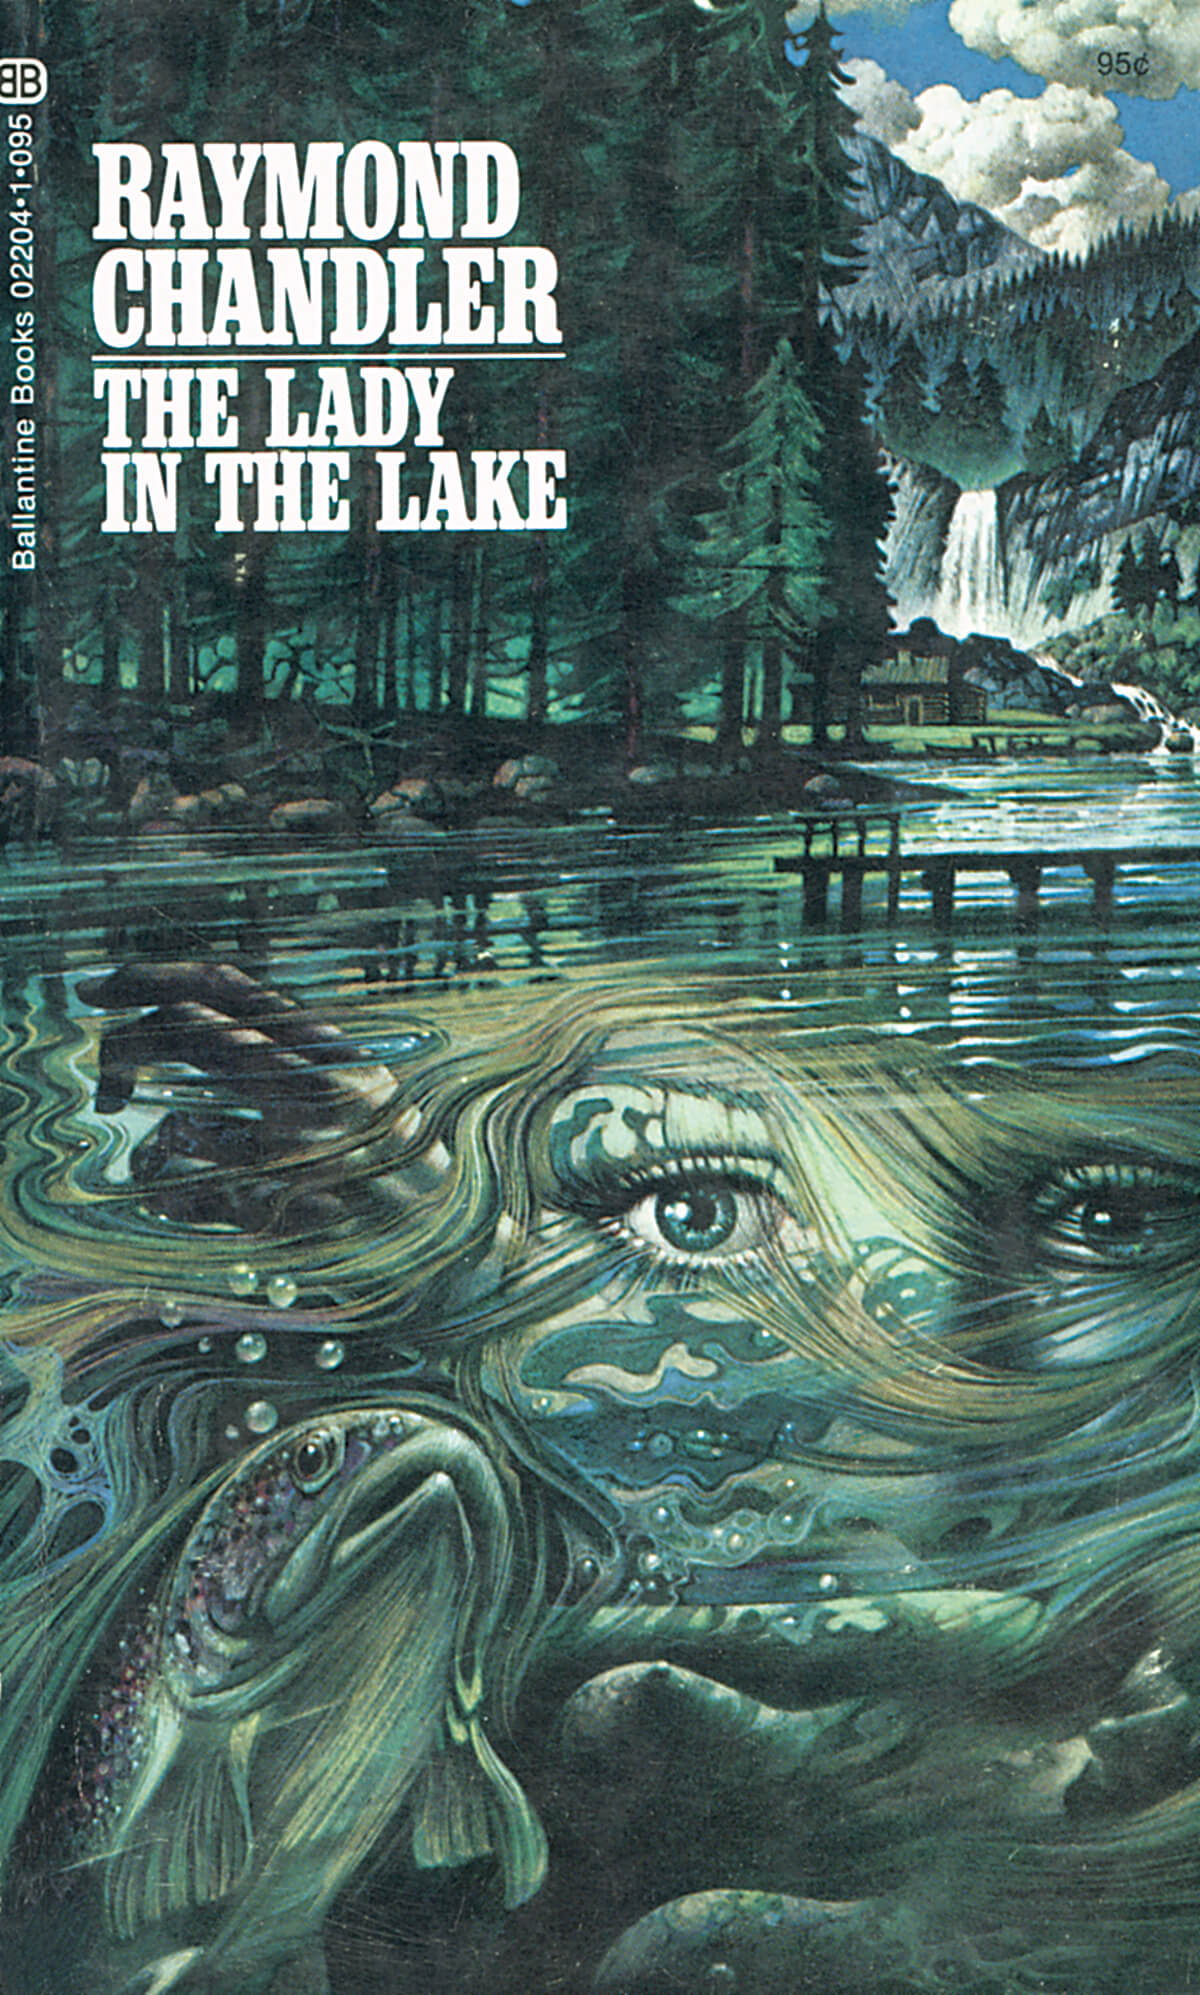 The Lady in the Lake by Raymond Chandler, Cover by Tom Adams